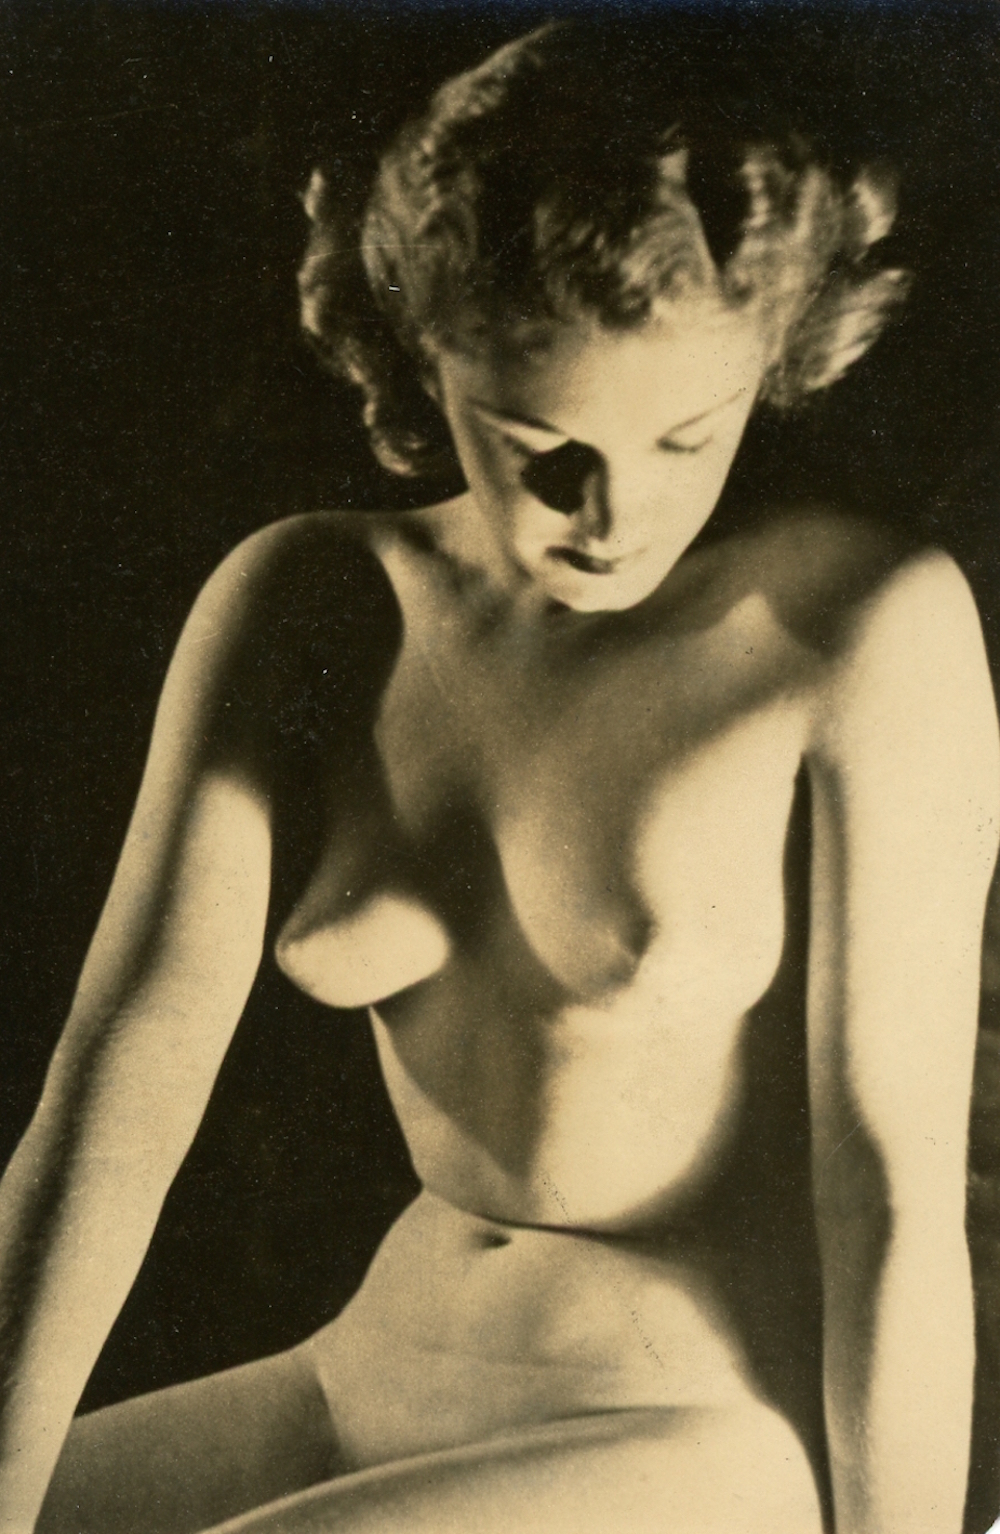 German women nude in black and white